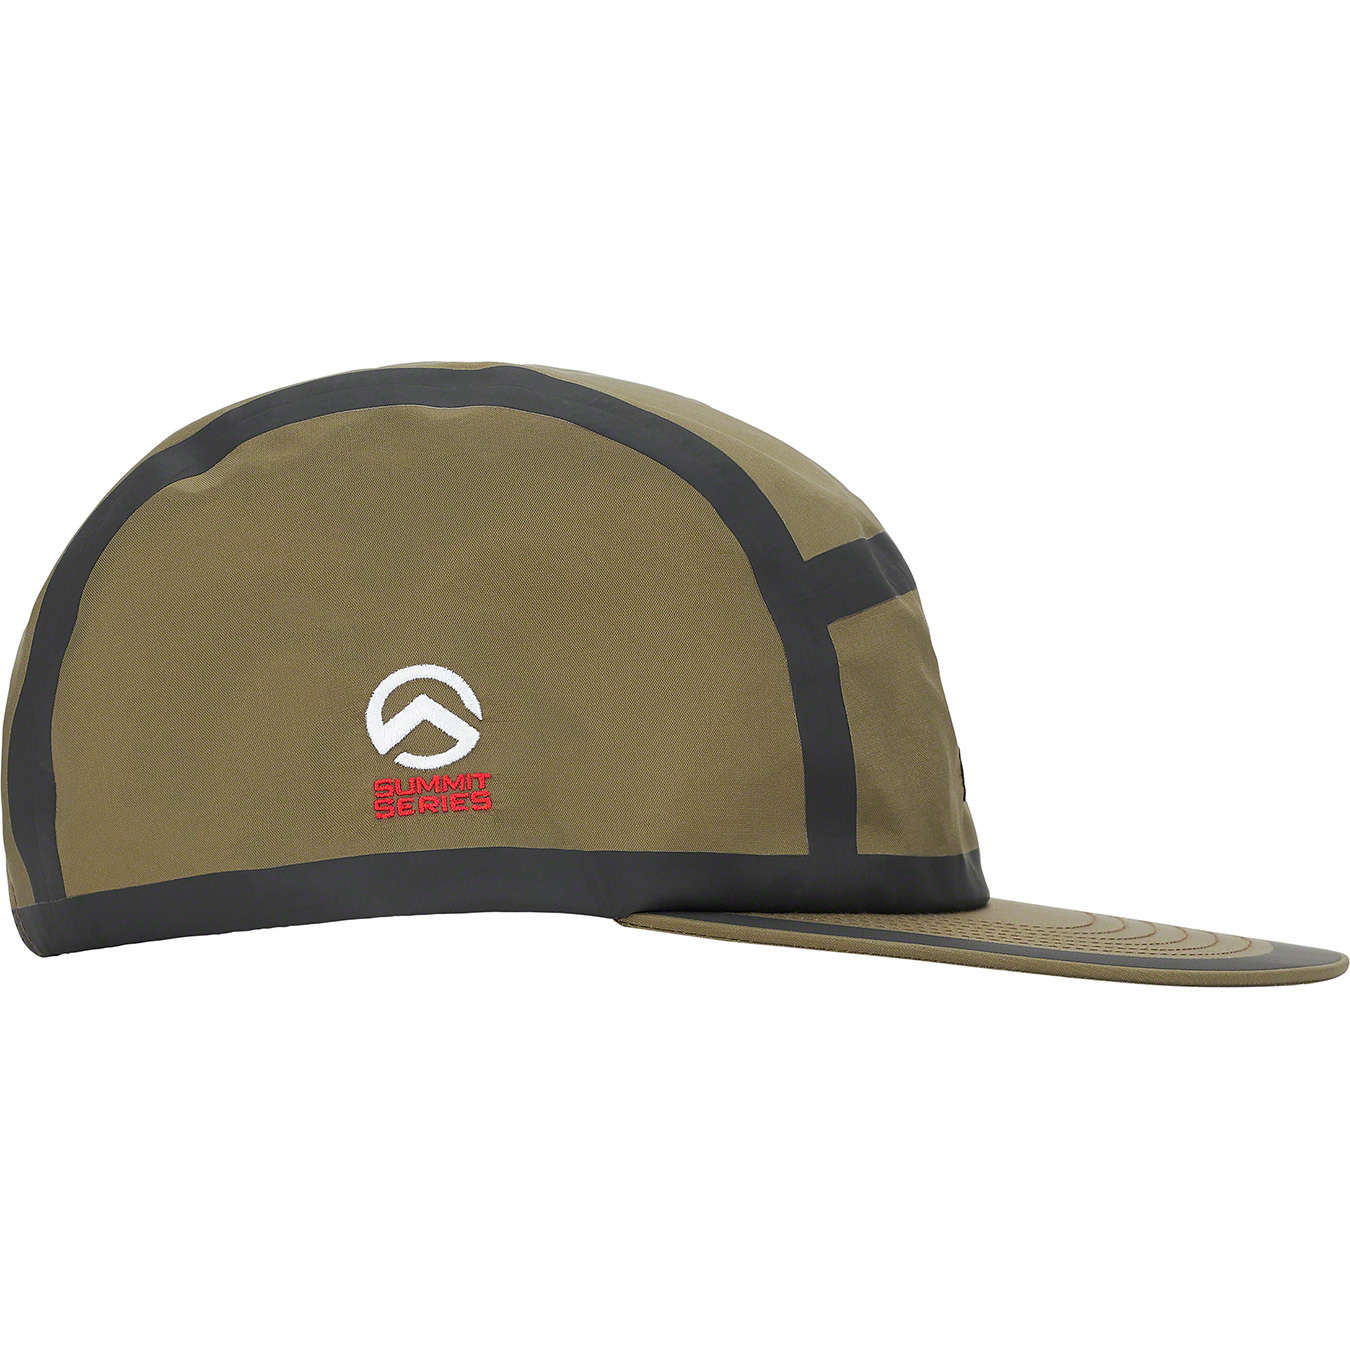 supreme-the-north-face-summit-series-outer-tape-seam-collection-release-21ss-20210529-week14-camp-cap